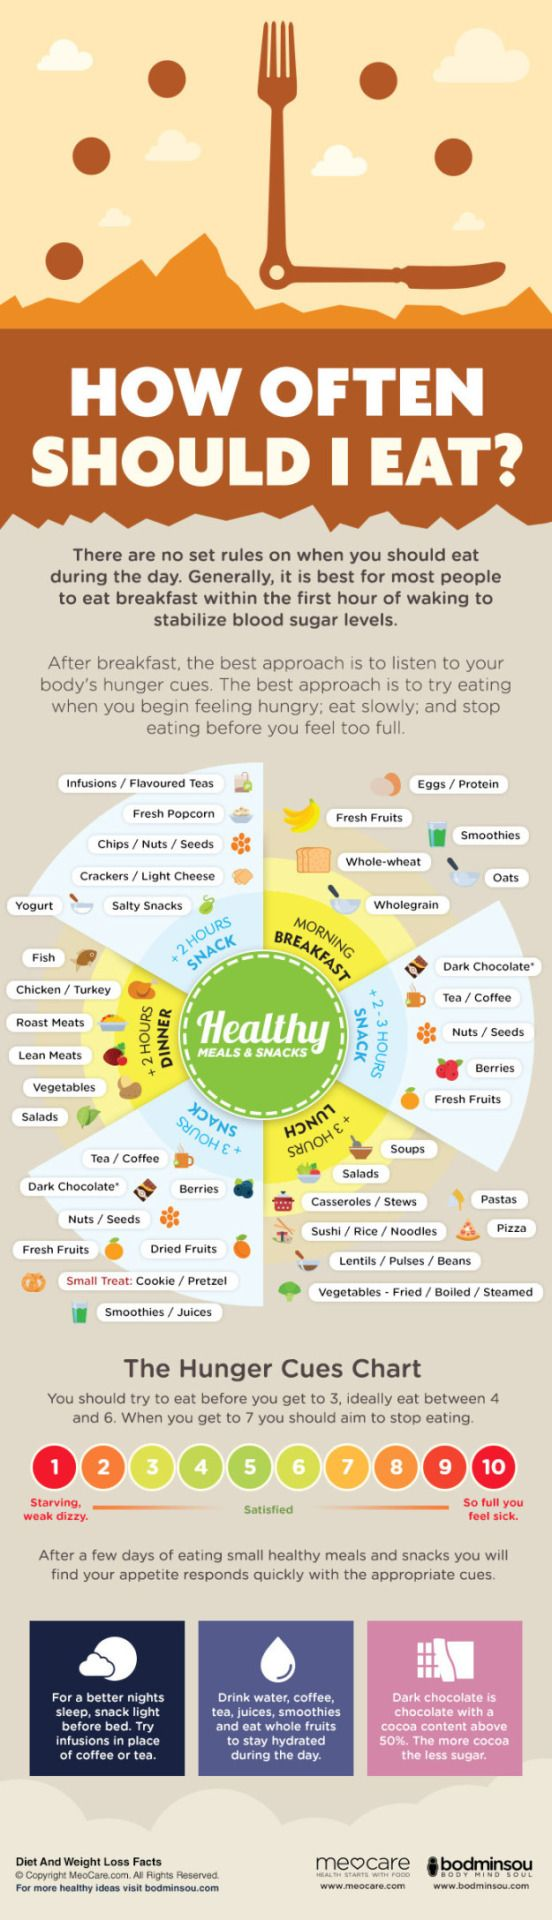 Cheat Sheets For When You're Trying To Eat A Little Healthier